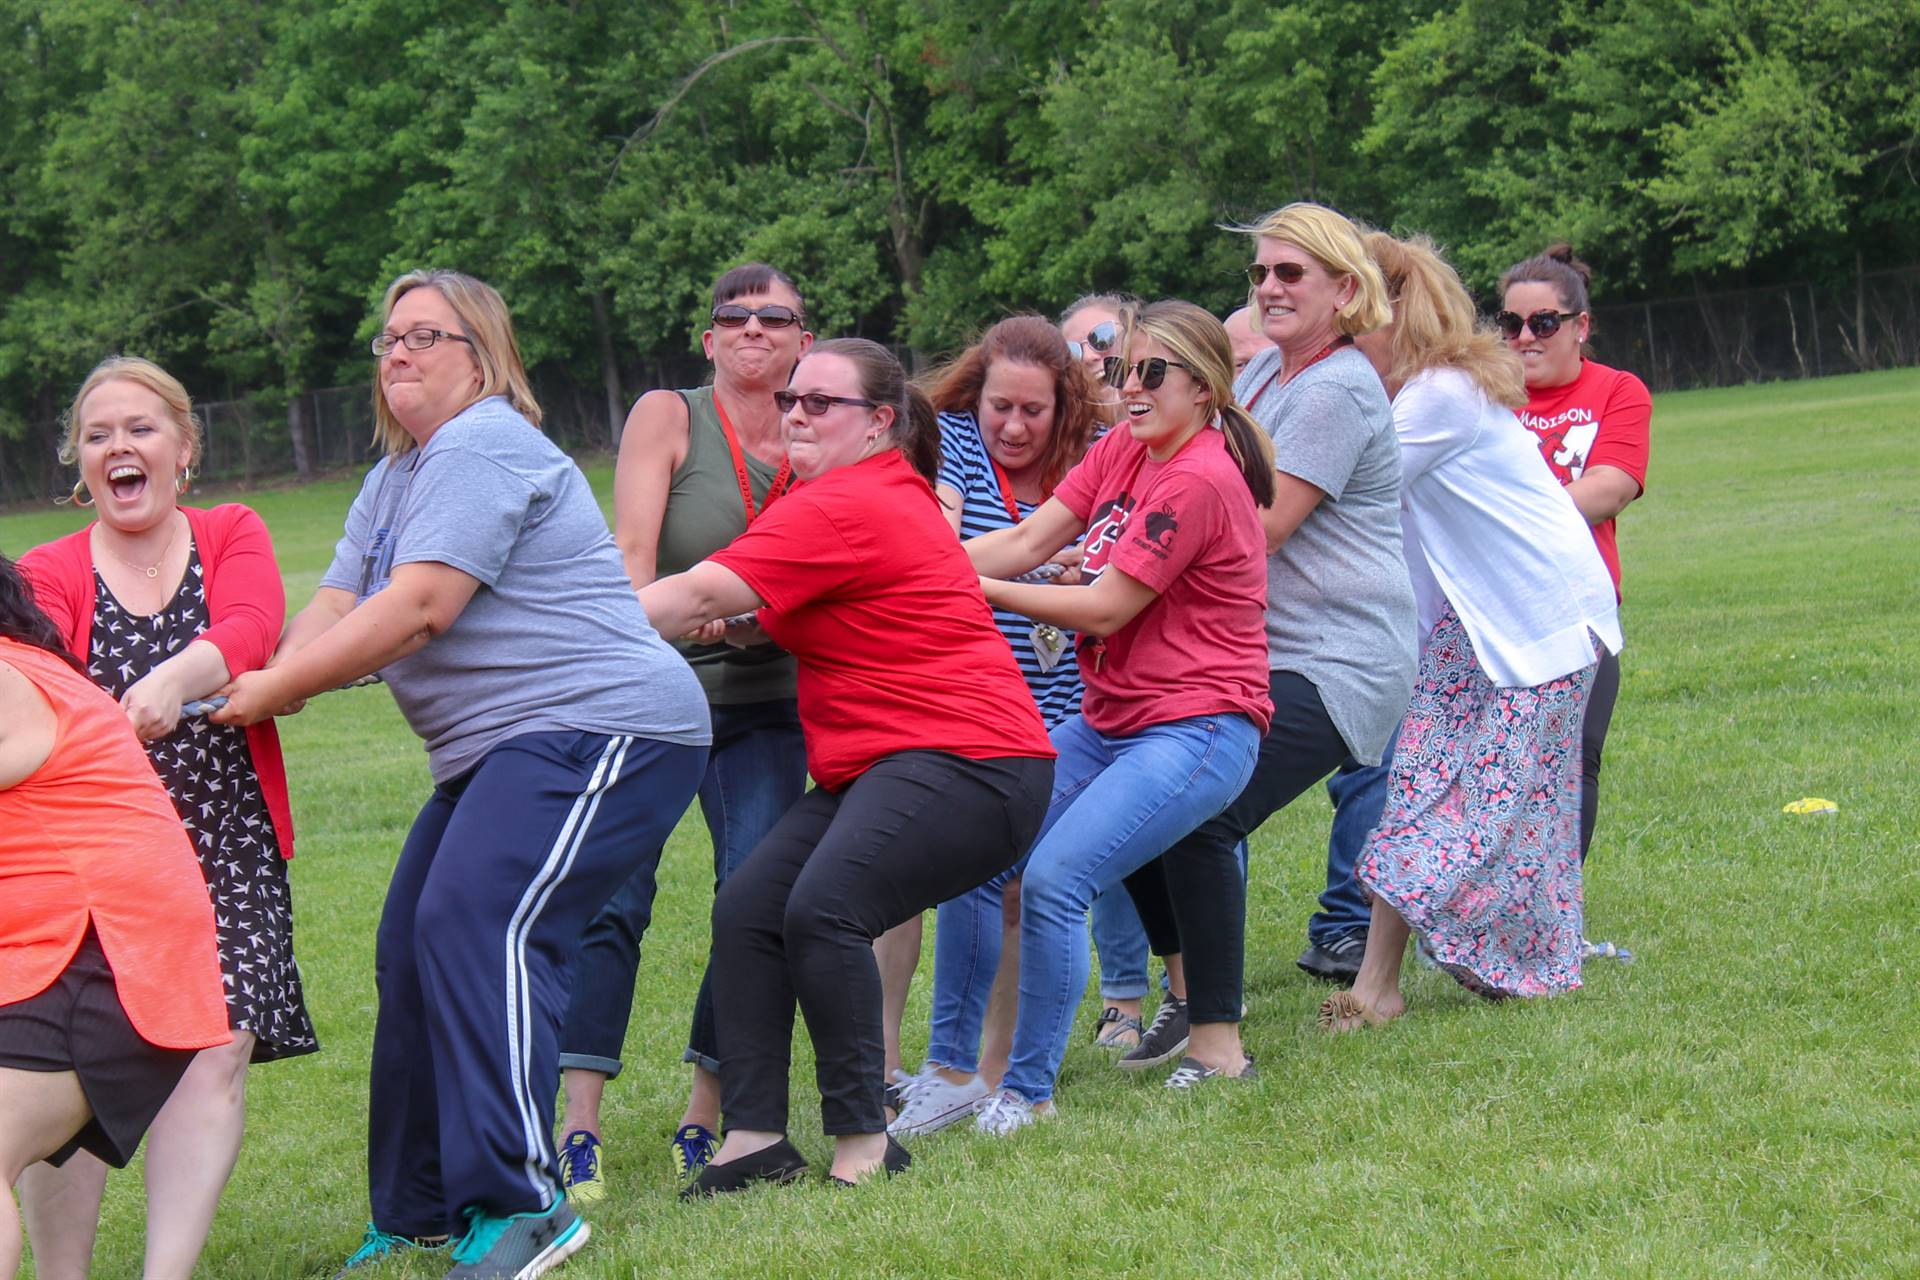 Teachers competing against students in Tug of War!